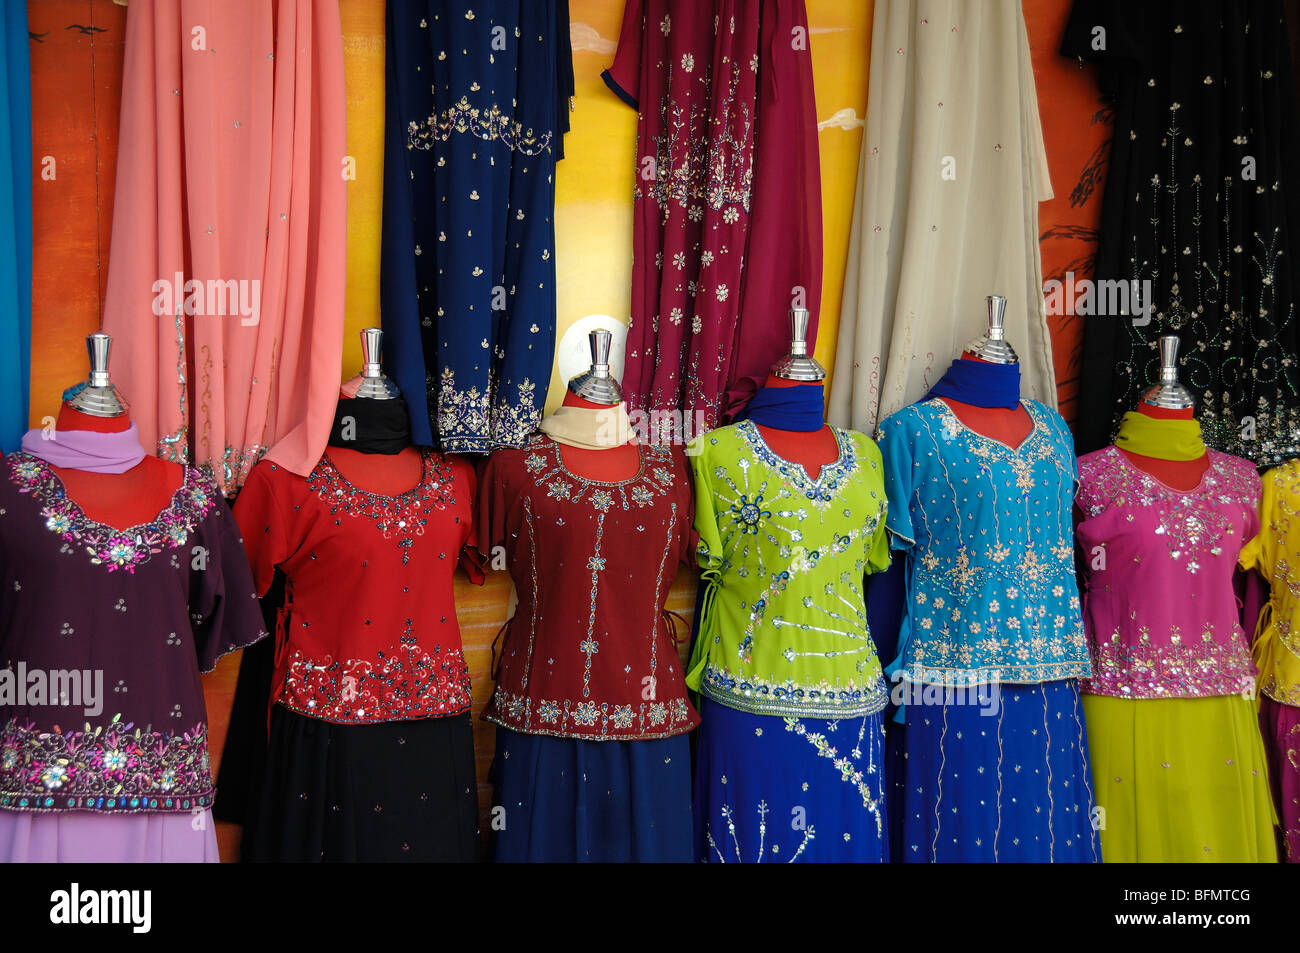 Display Of Indian Clothes Fashions For Sale In Shop Or Store In